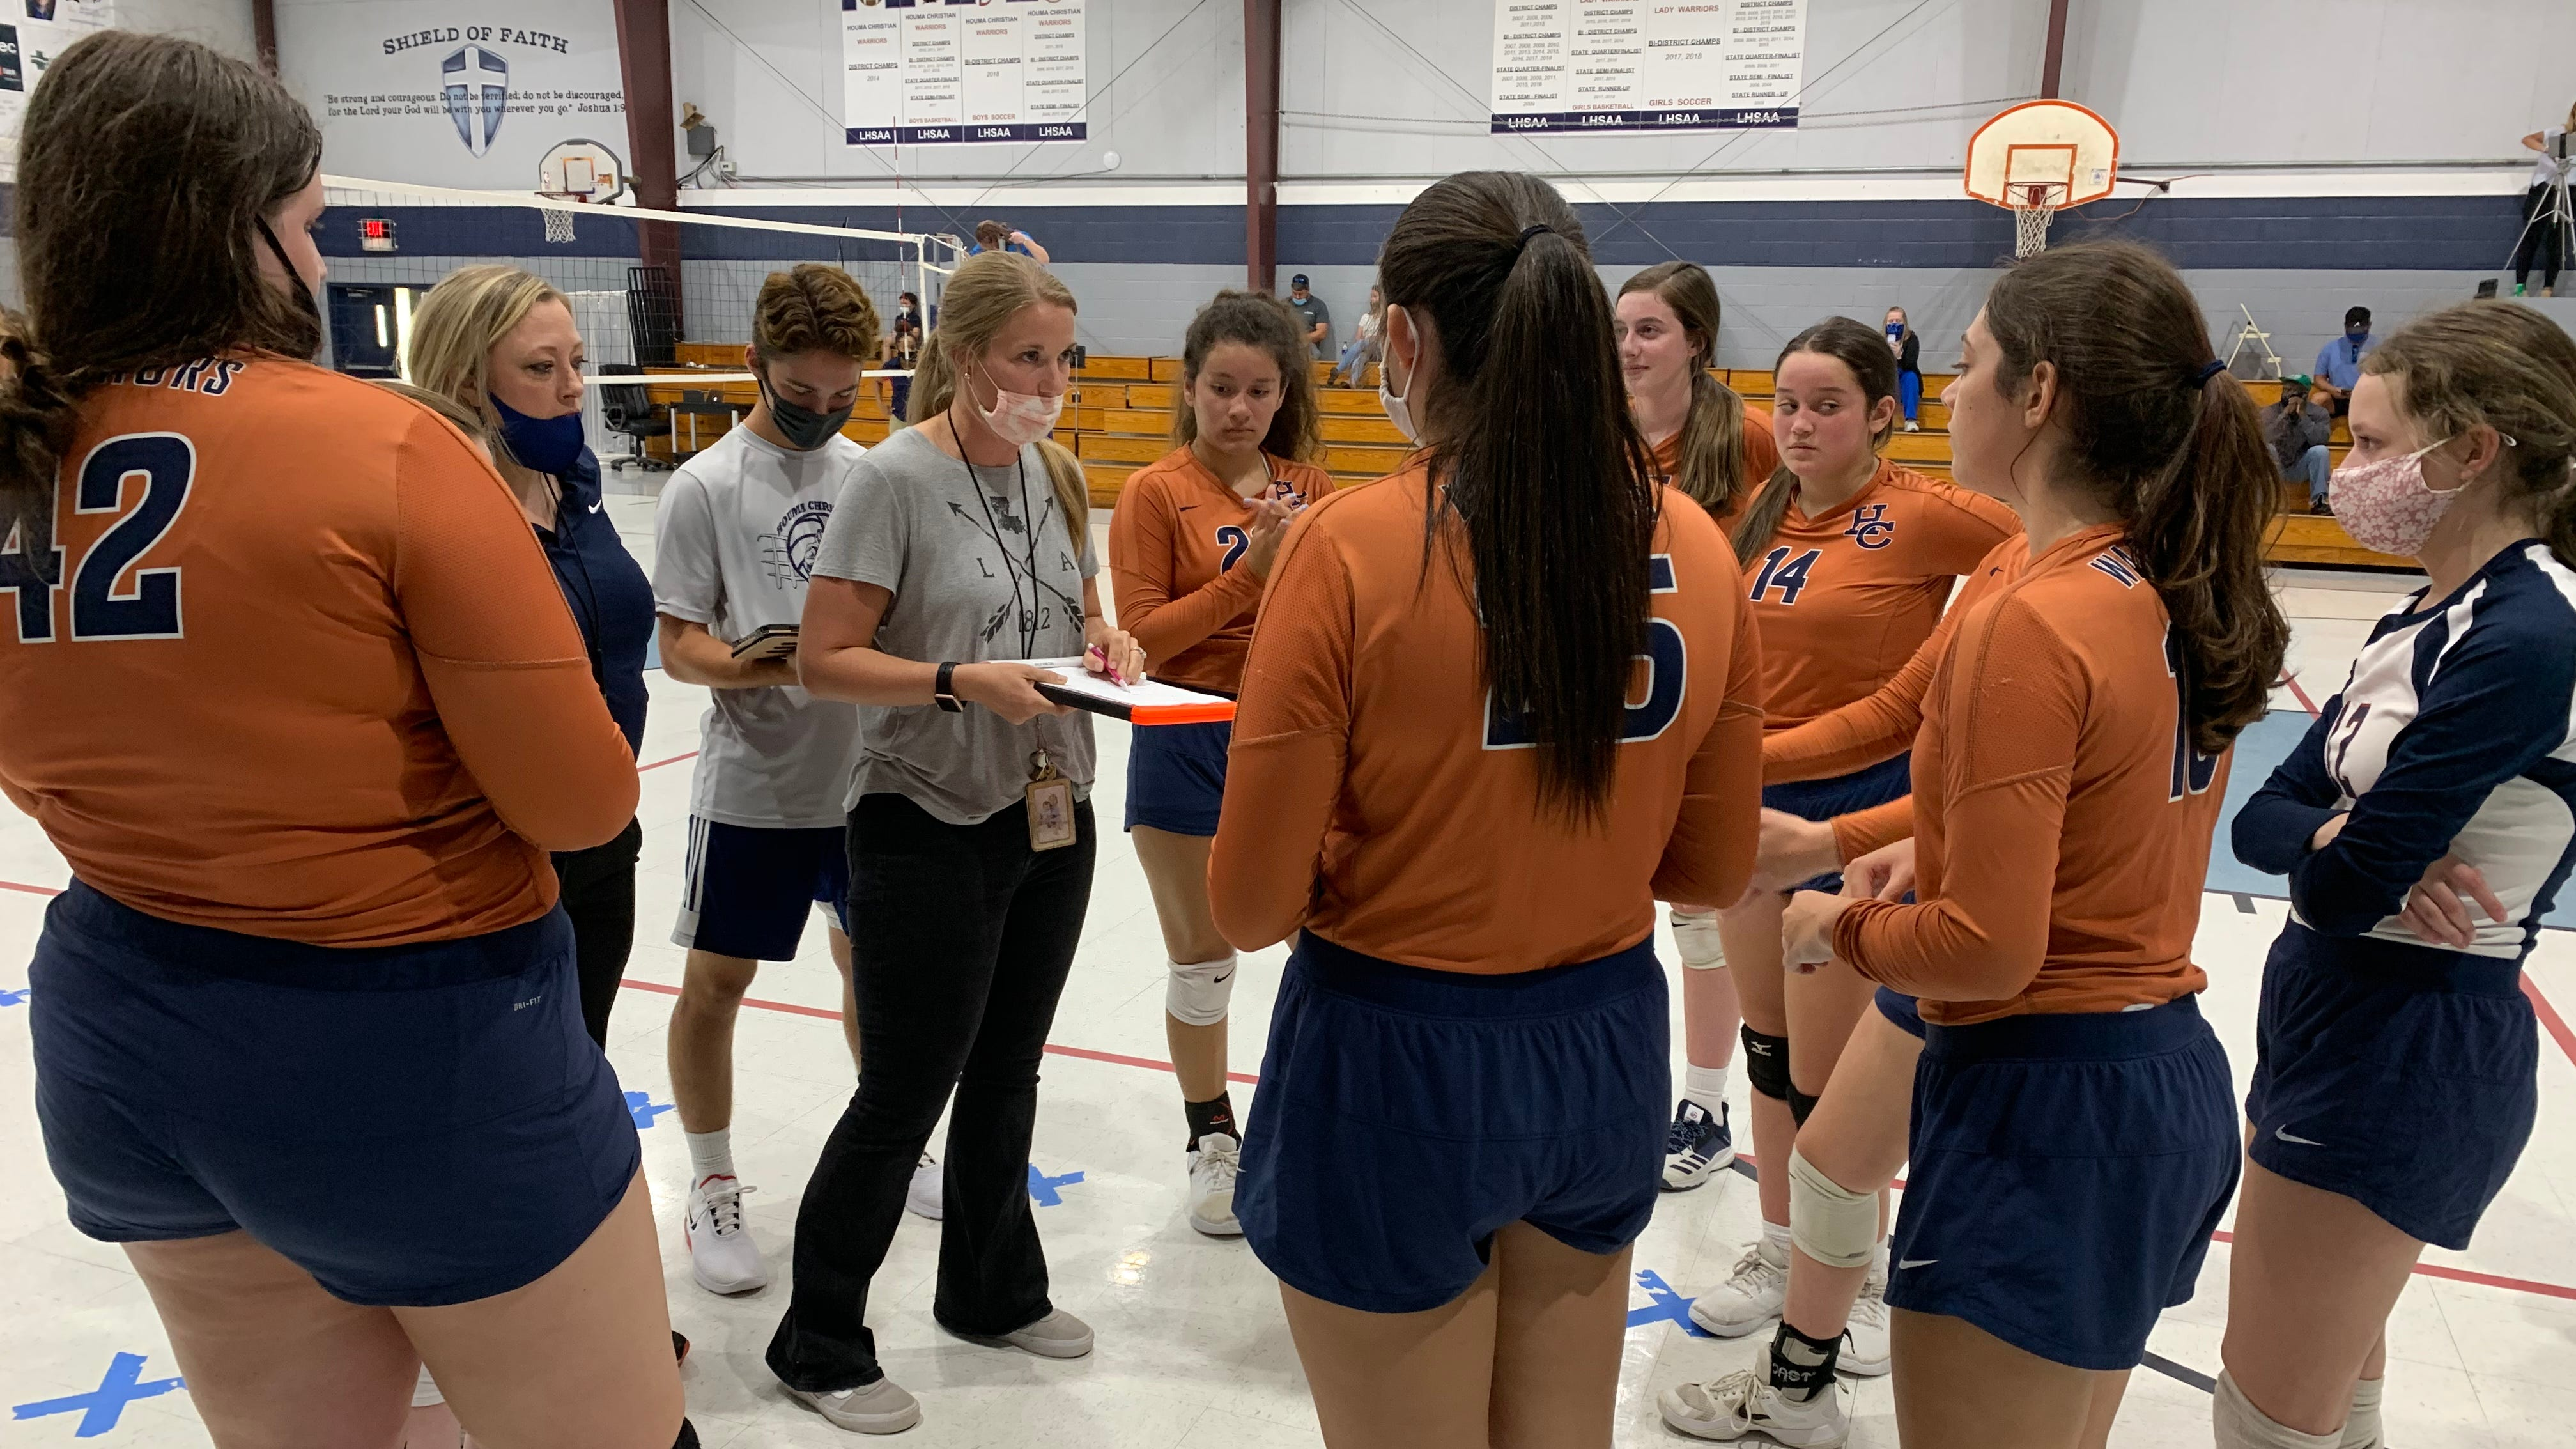 Back in action: Houma Christian starts season with volleyball win over Ellender